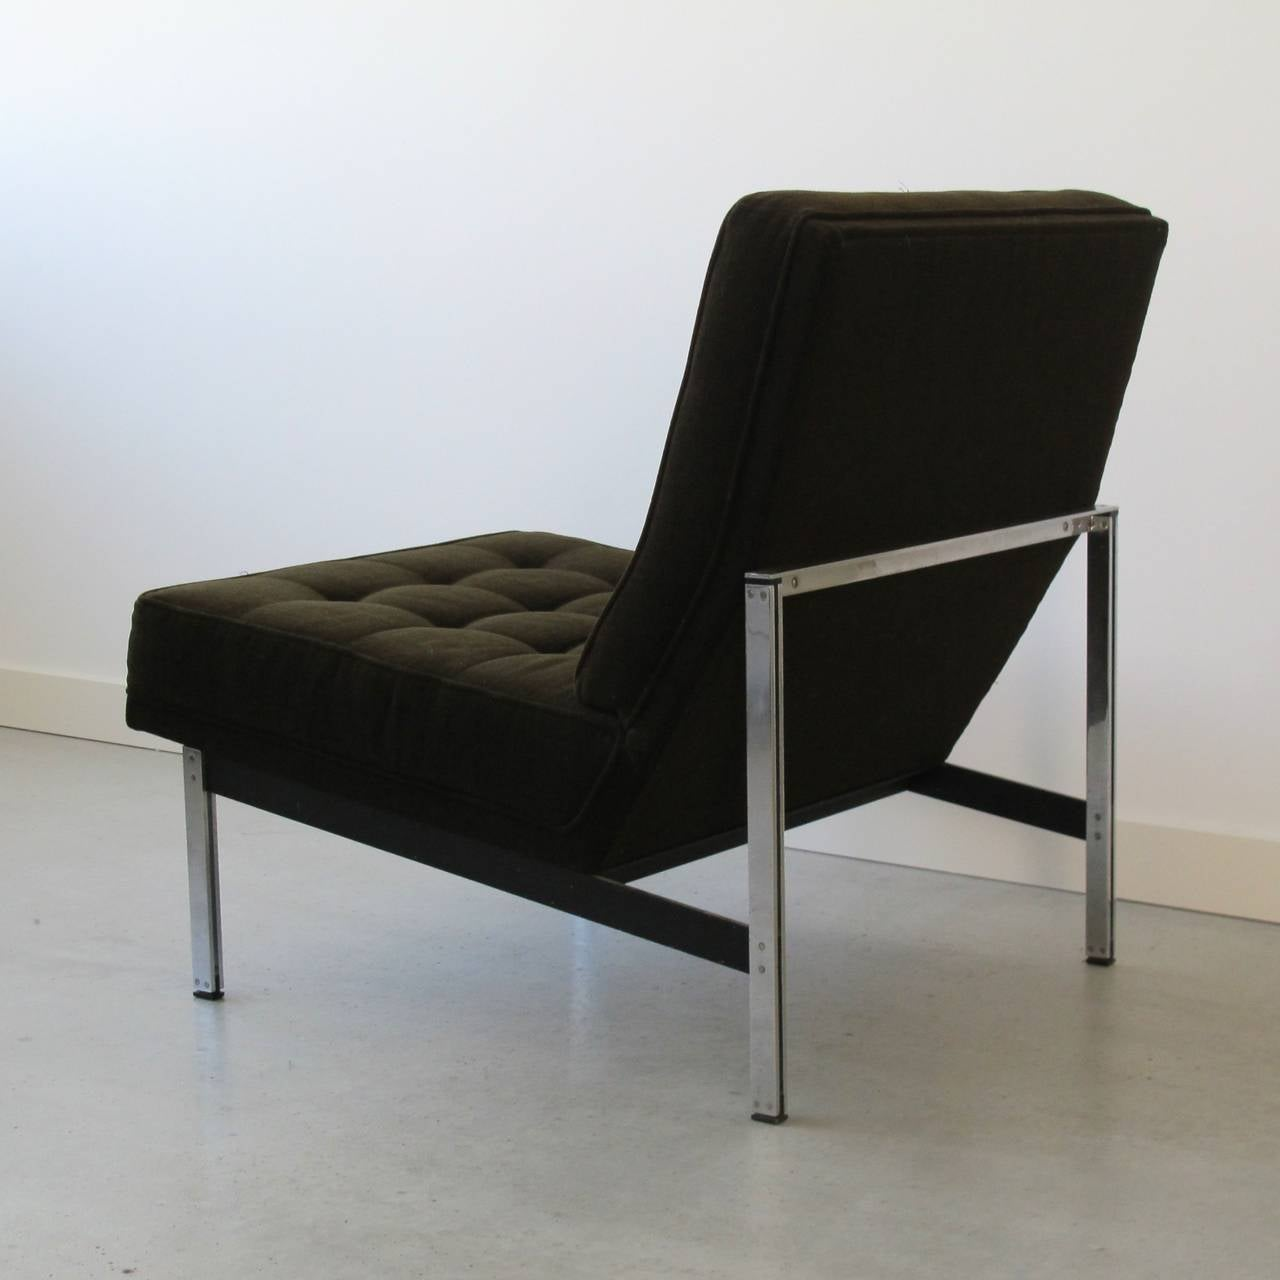 Mid-20th Century Pair of Parallel Bar Lounge Chairs by Florence Knoll, circa 1955